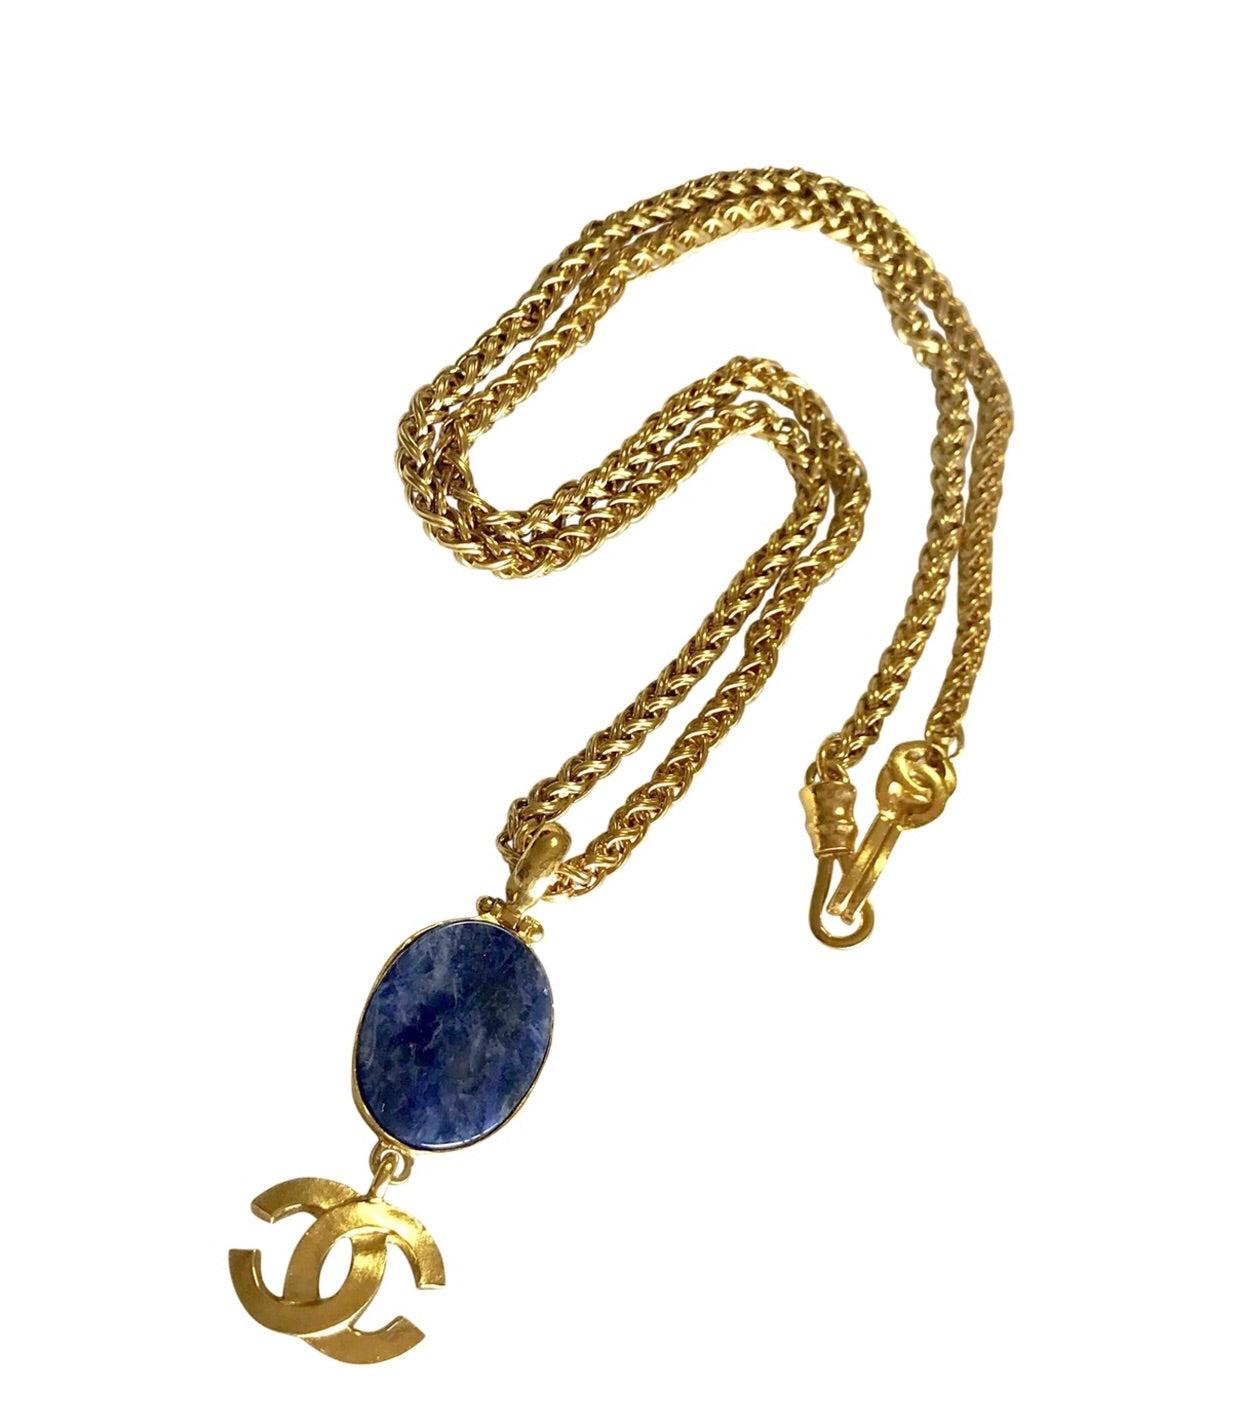 4ee1472abe8c69 Vintage CHANEL oval blue stone and CC mark pendant top statement necklace.  Gorgeous